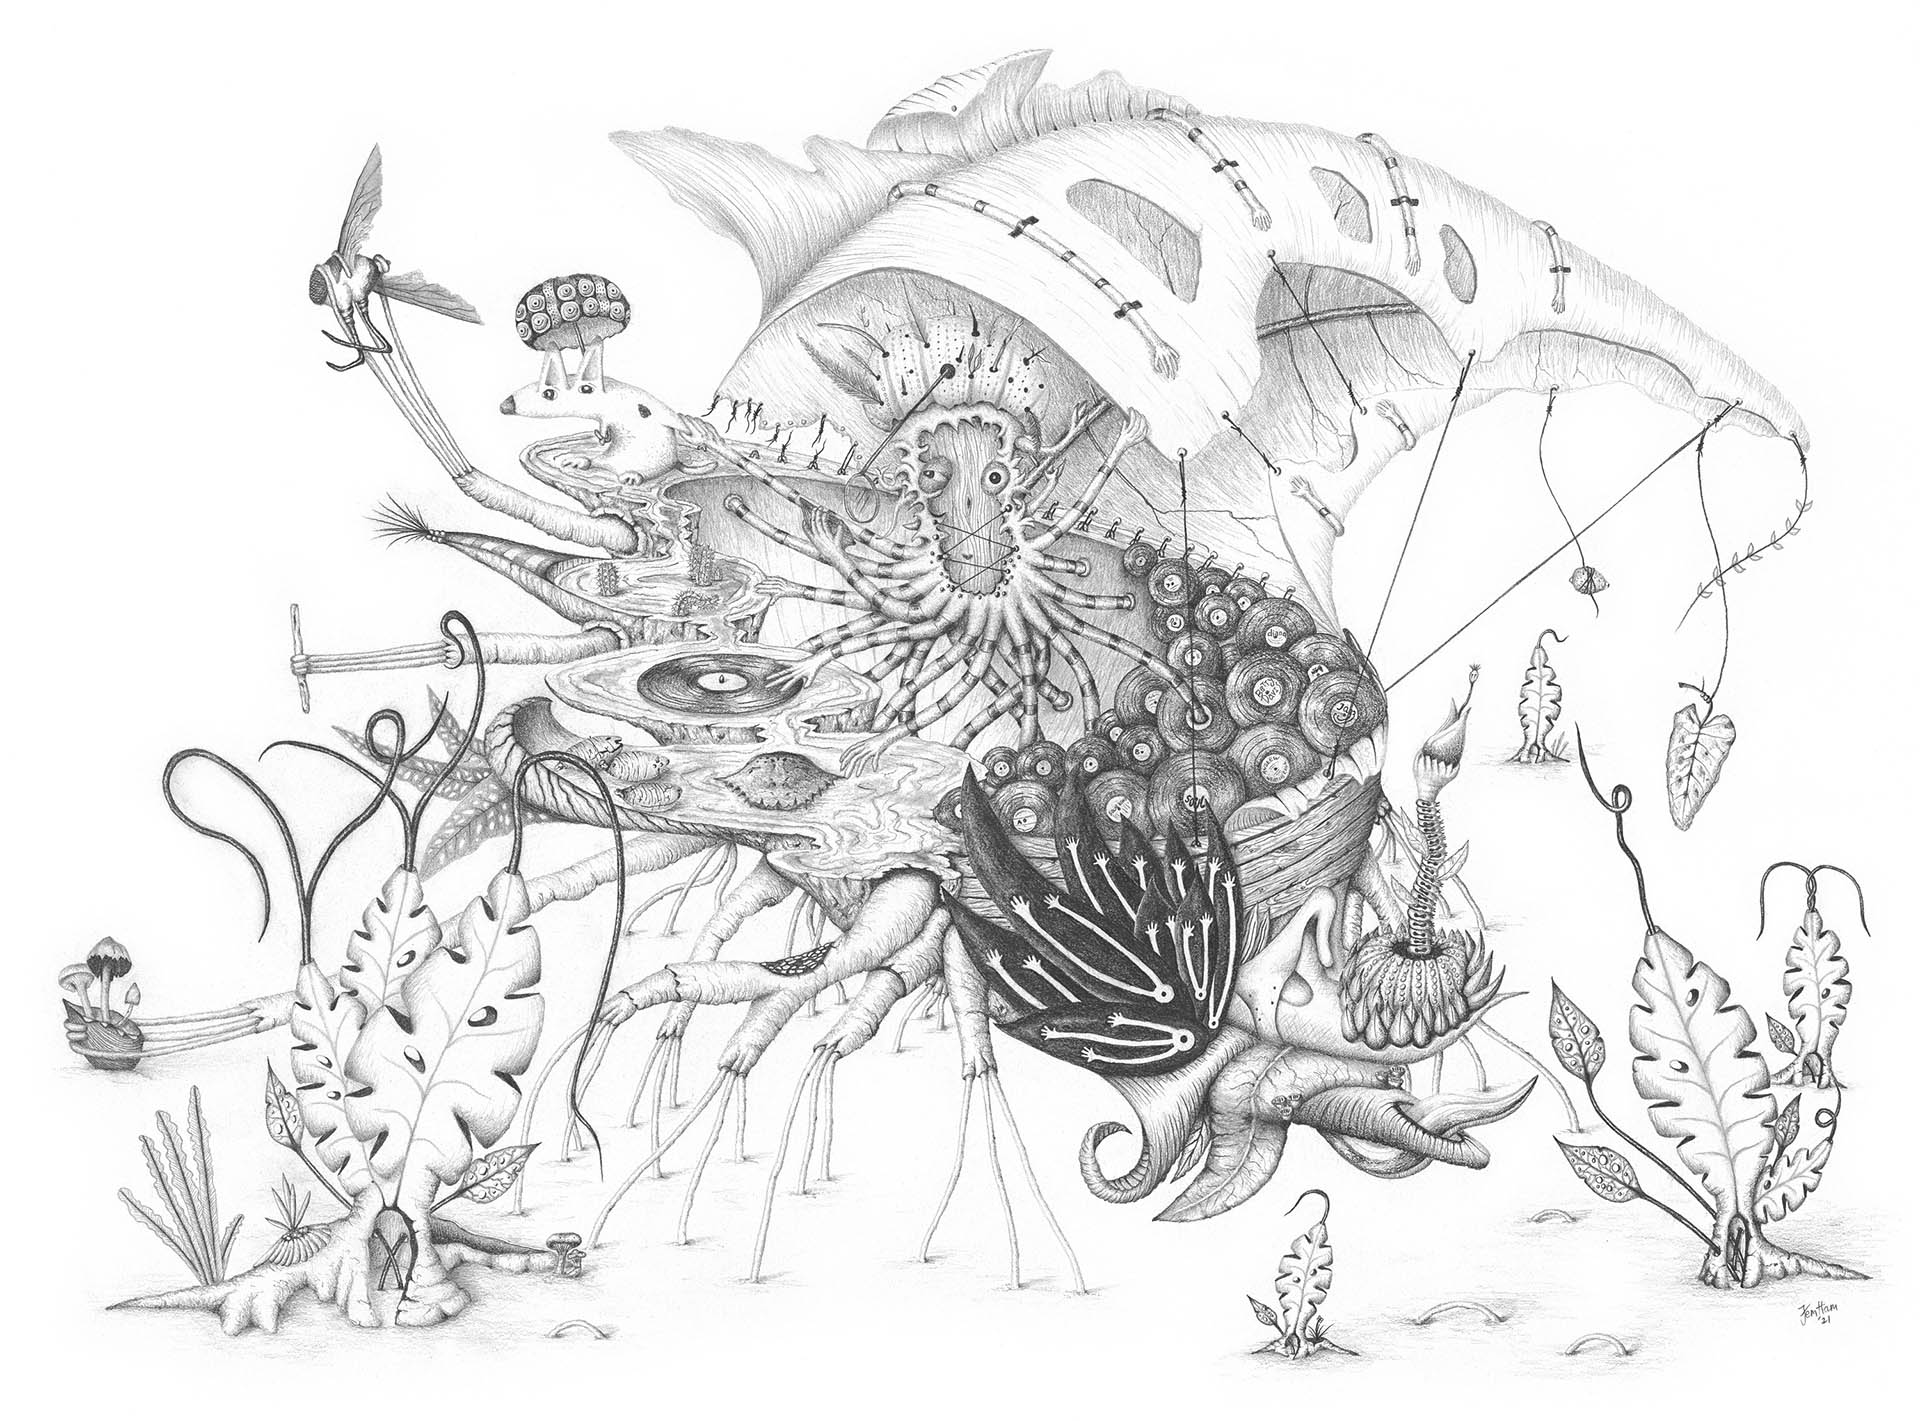 Fictional character sailing in fantasy leaf boat pencil drawing